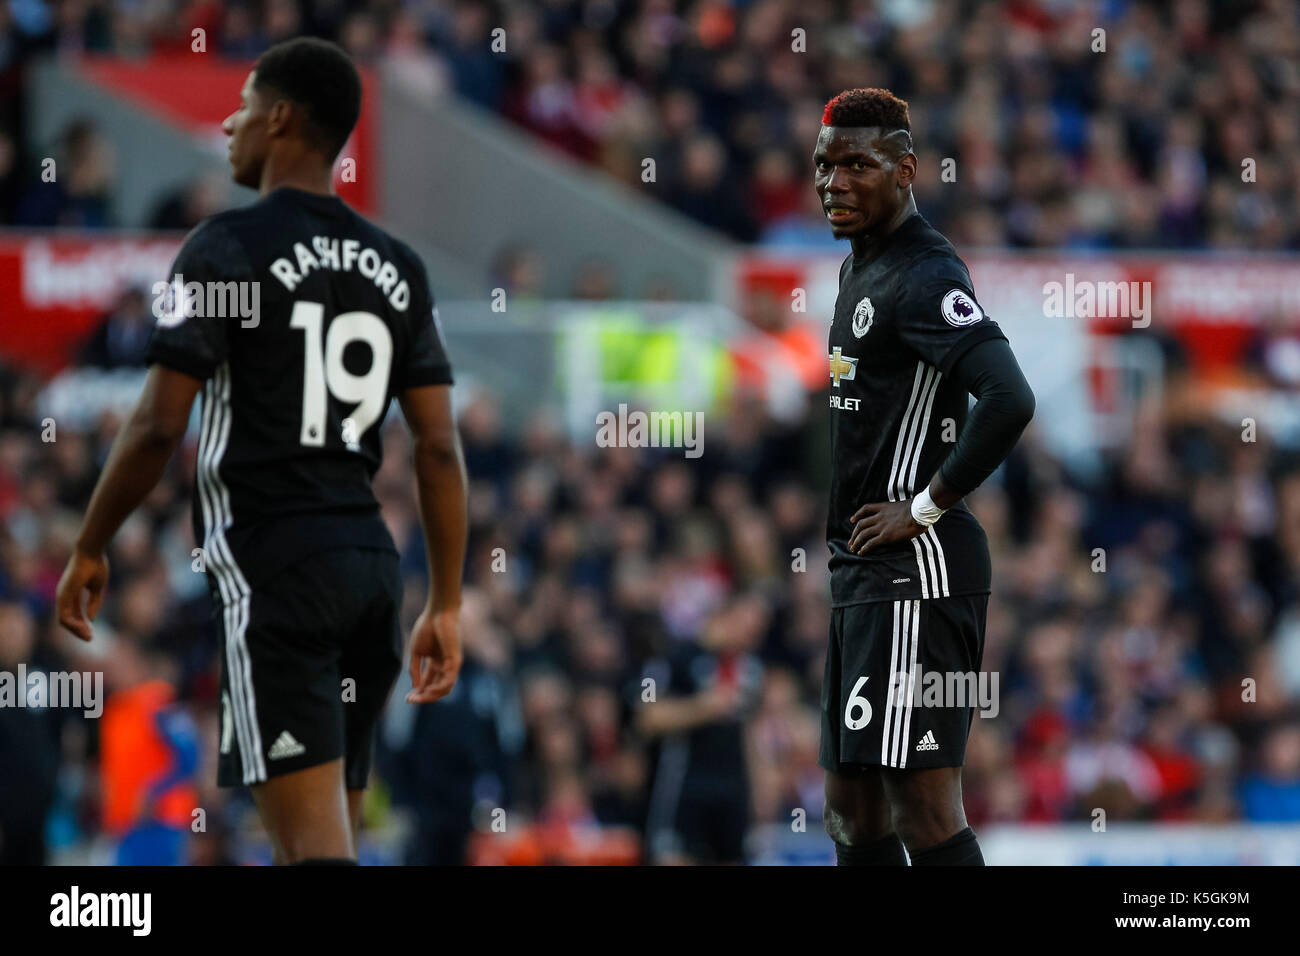 Stoke-on-Trent, UK 09th Sep, 2017 Paul Pogba of Manchester United looks dejected during the Premier League match between Stoke City and Manchester United at Bet365 Stadium on September 9th 2017 in Stoke-on-Trent, England. (Photo by Daniel Chesterton/phcimages.com) Credit: PHC Images/Alamy Live News - Stock Image